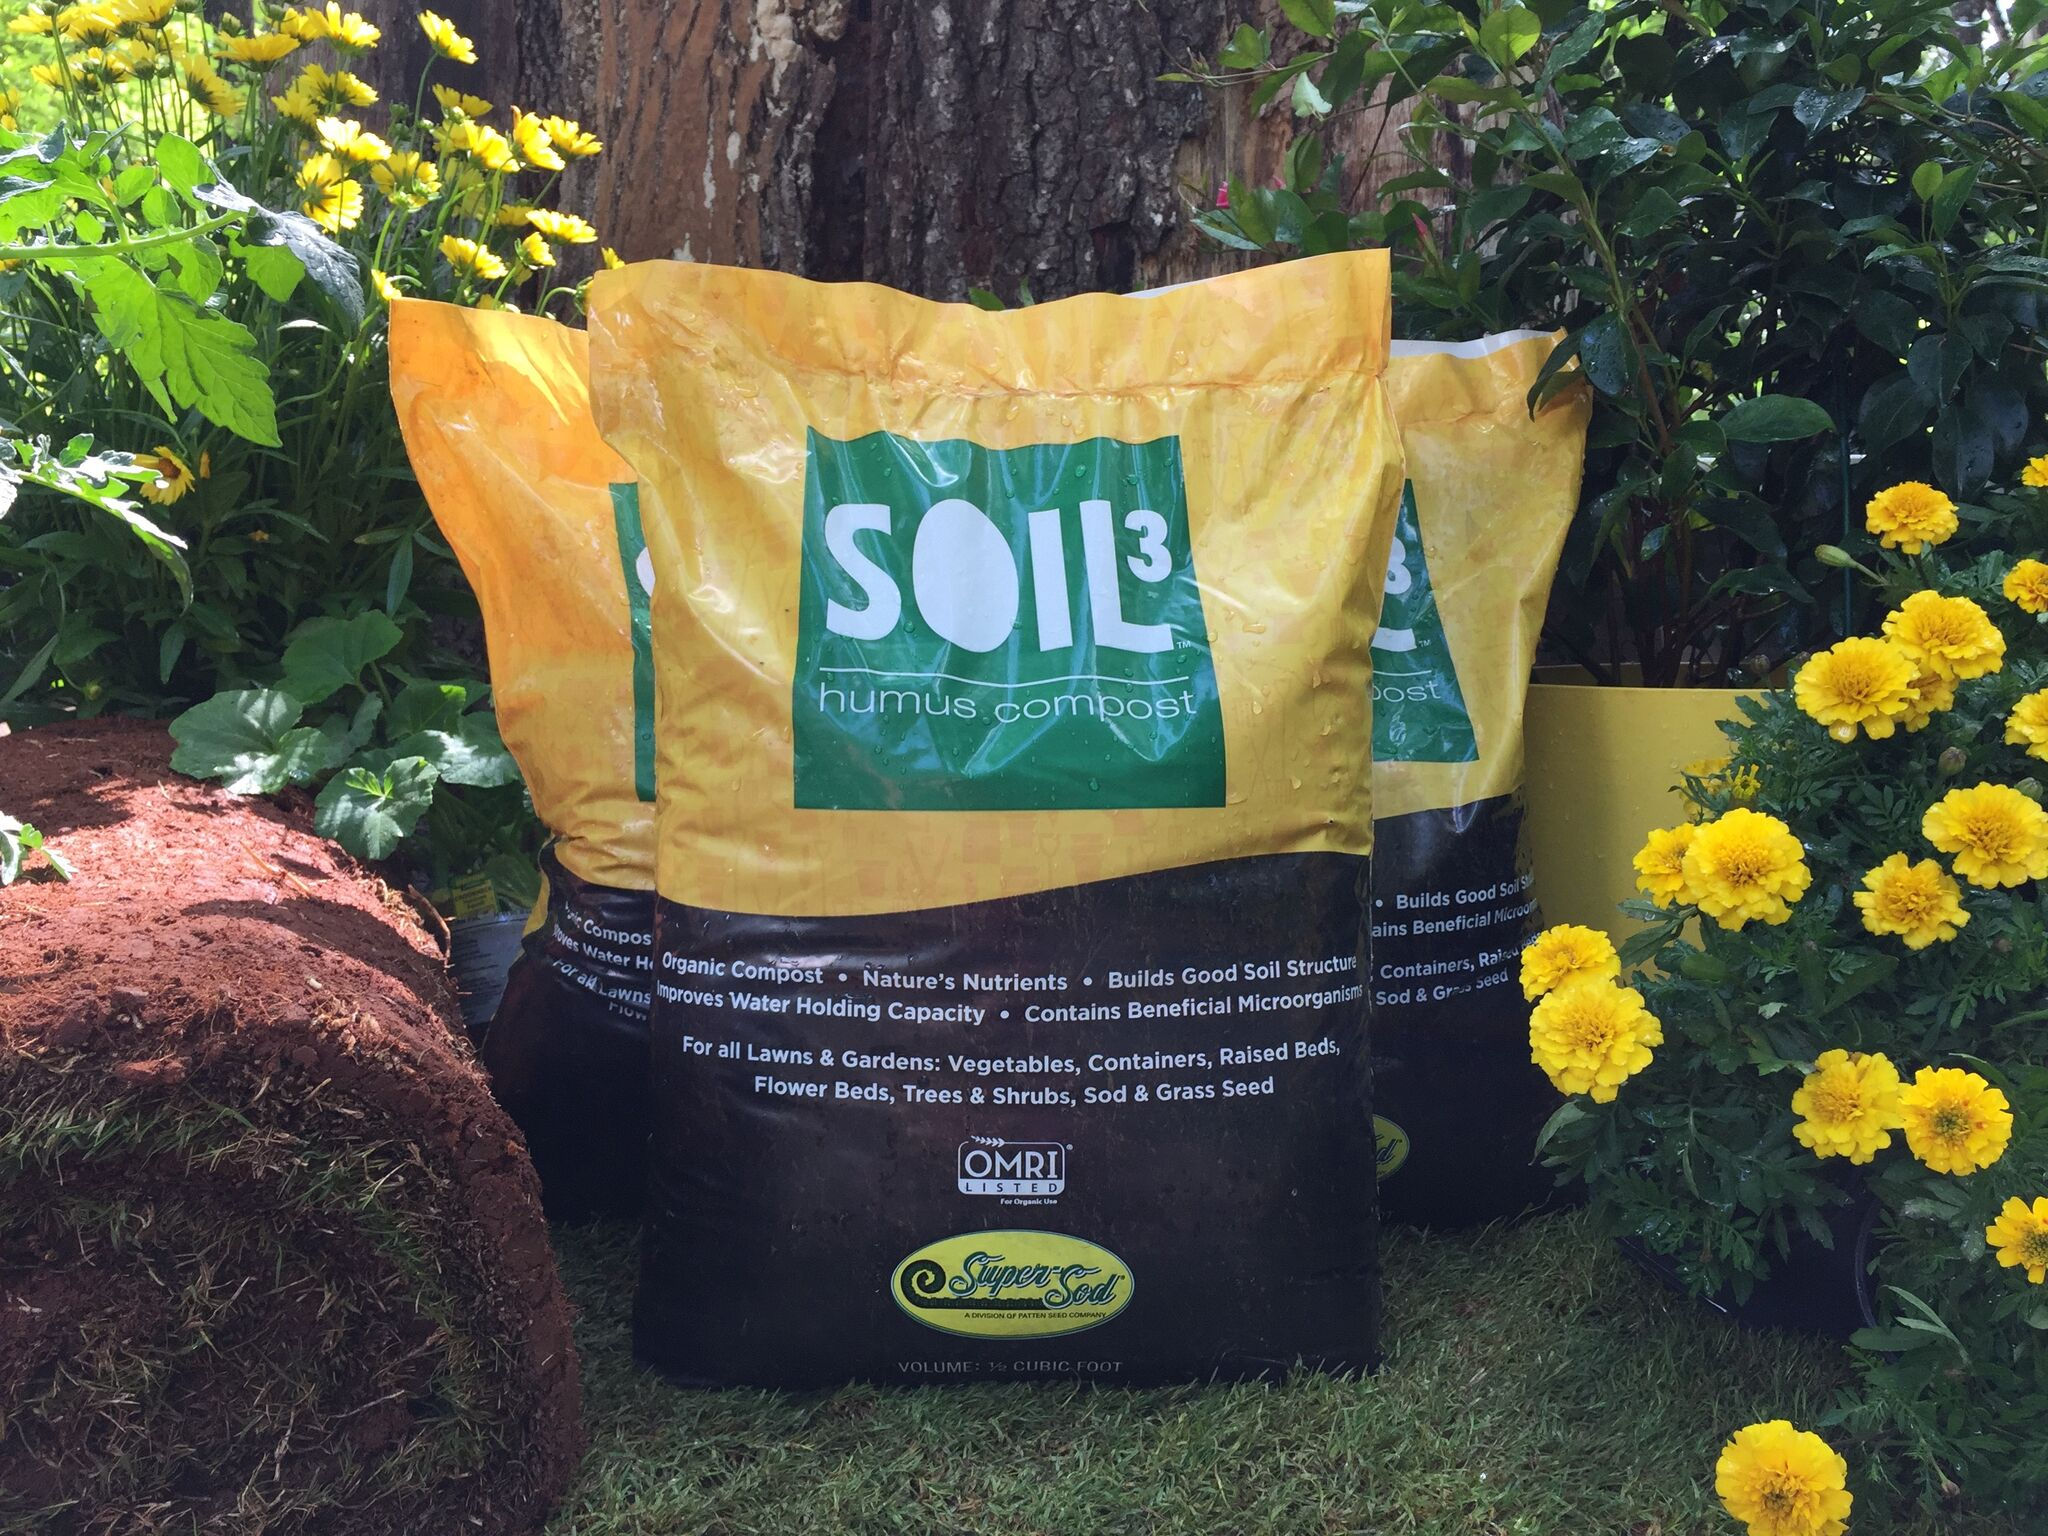 Seedbed preparation using half cubic bag of Soil<sup>3</sup>